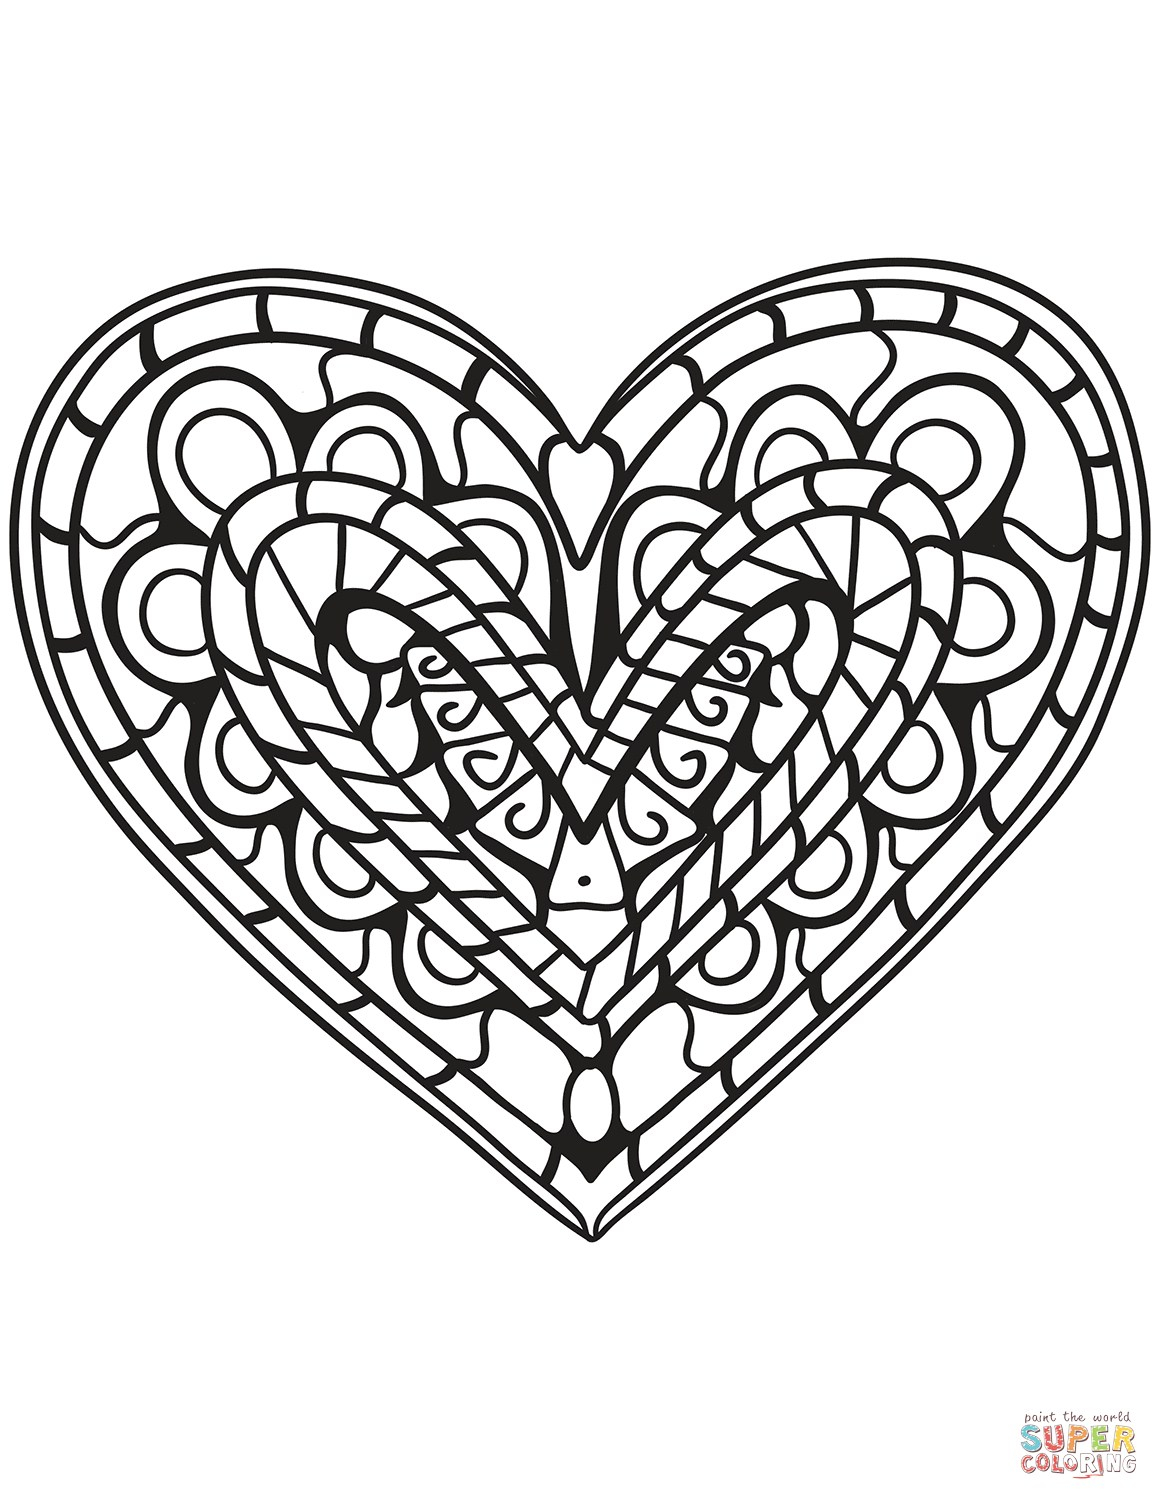 Heart Coloring Page Heart Coloring Pages Free Printable Pictures - Free Printable Heart Coloring Pages